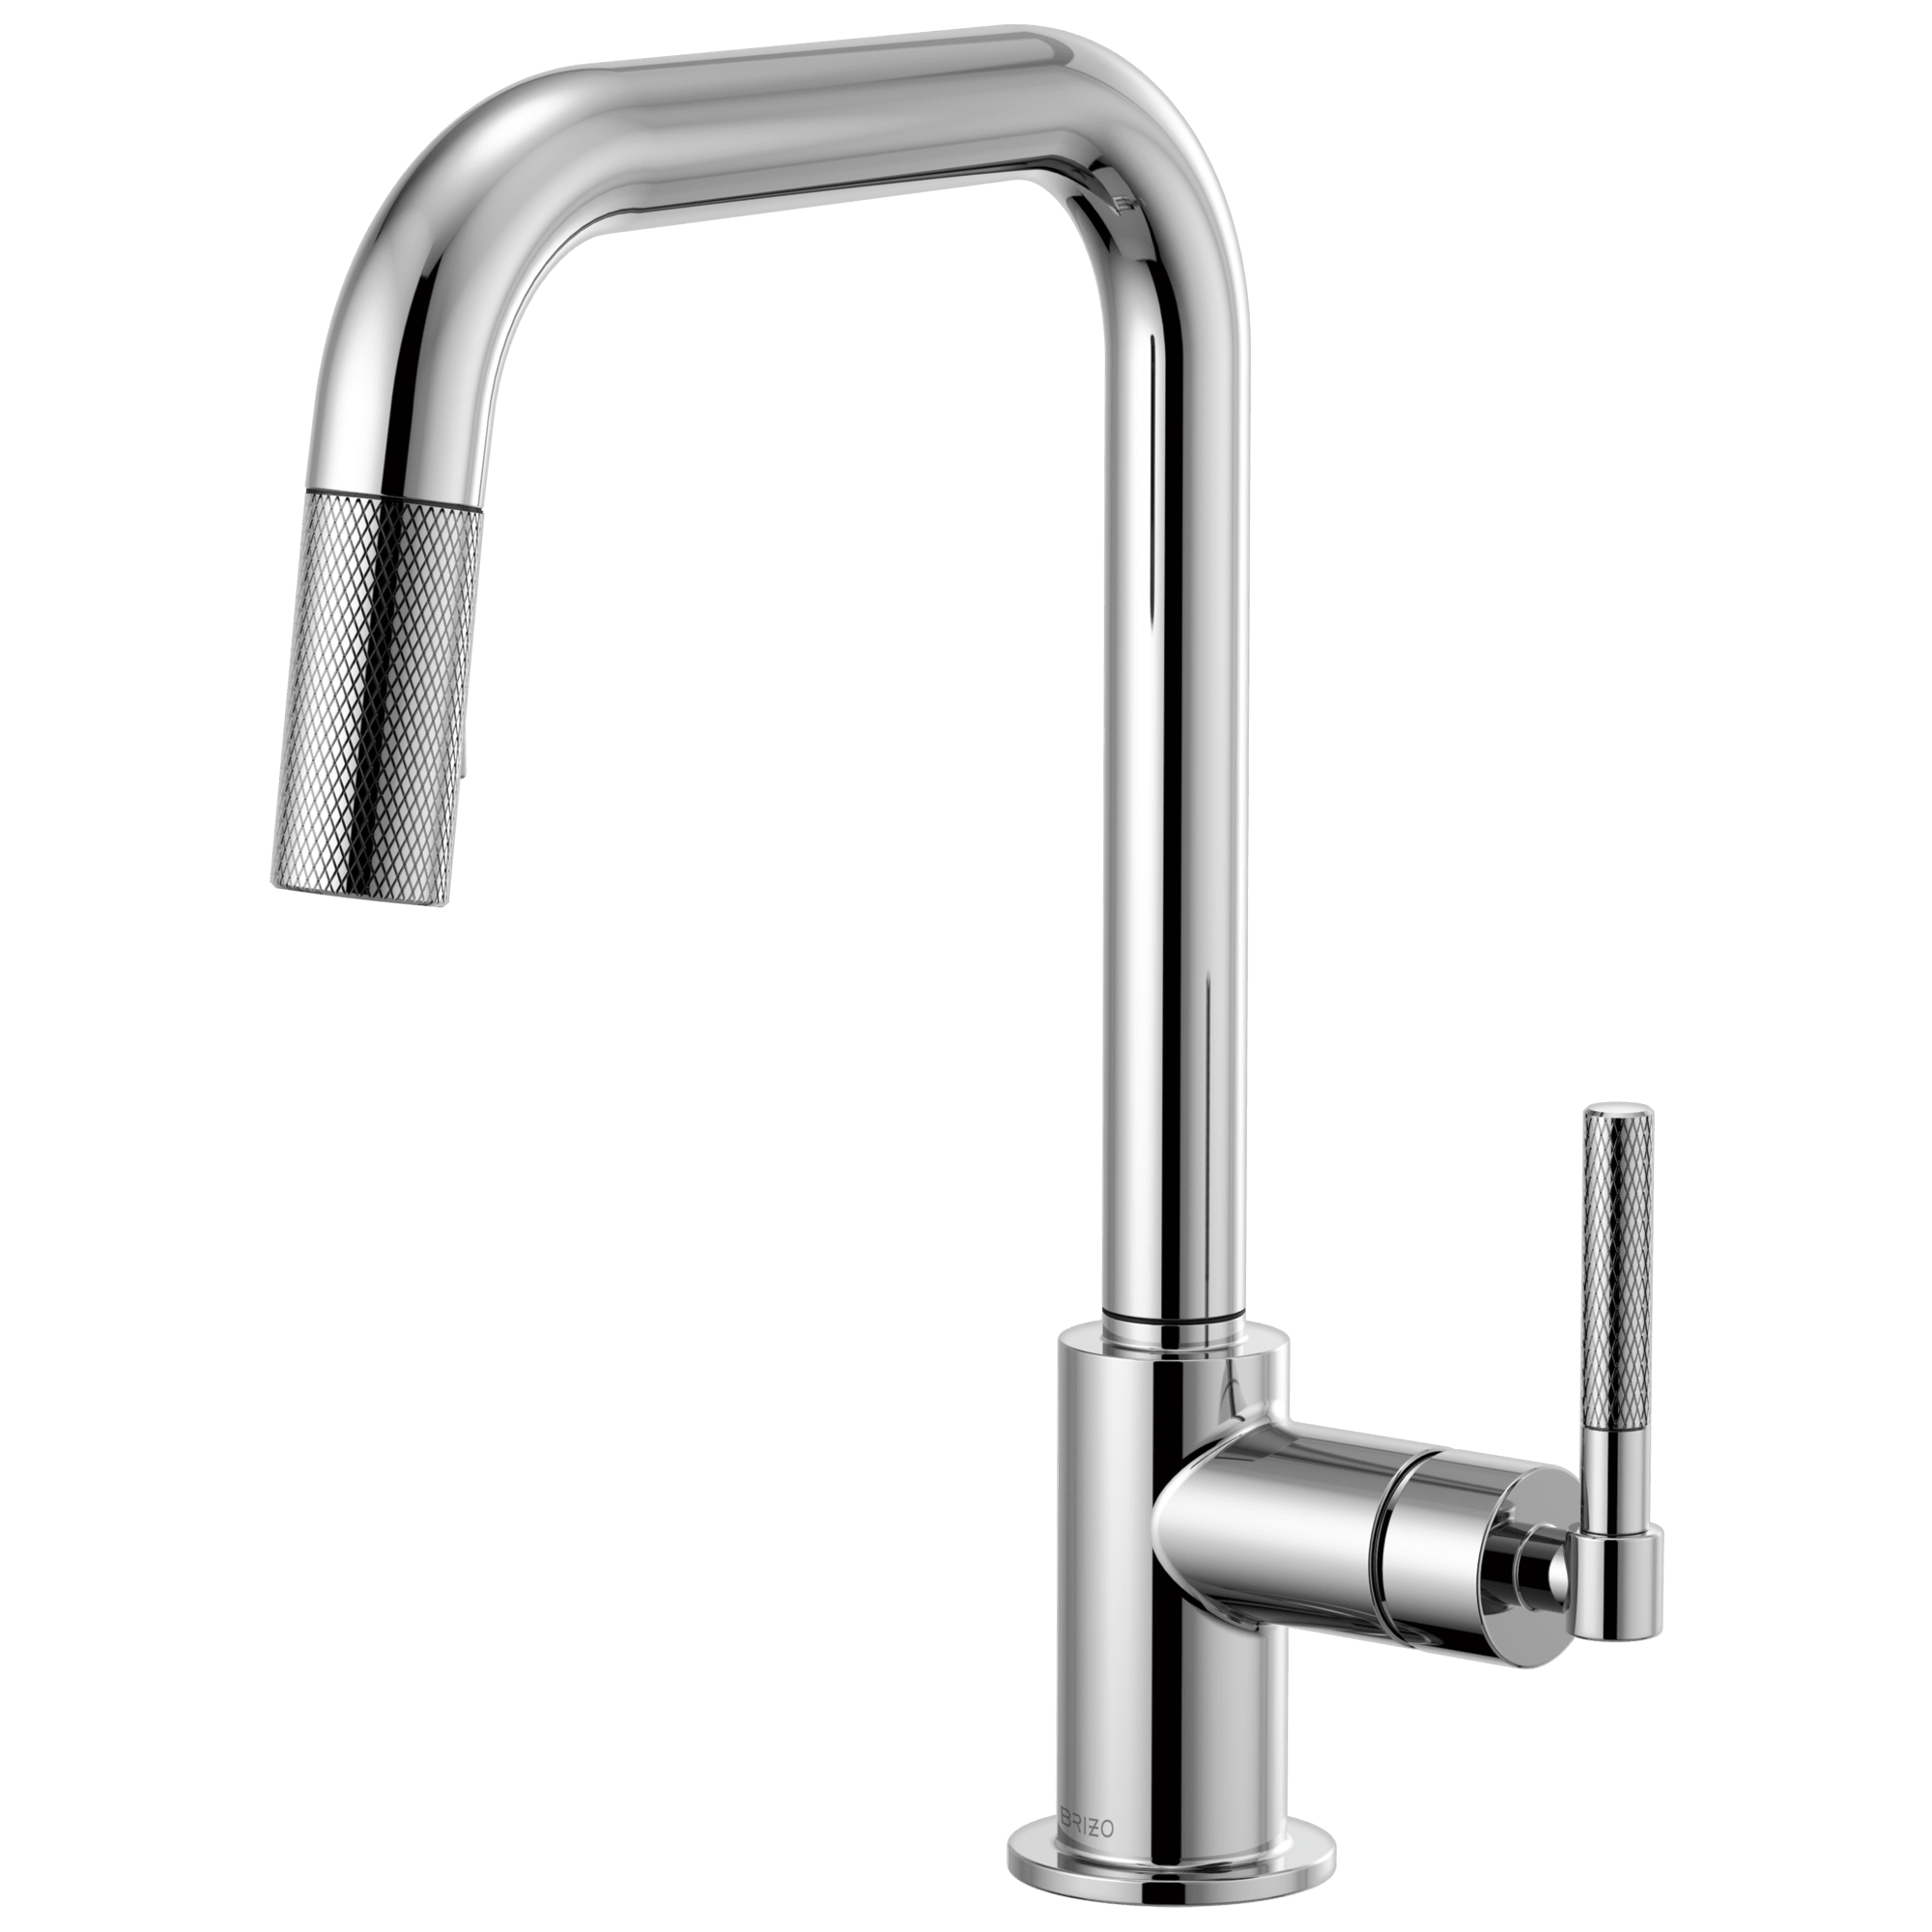 Kitchen Faucets | Faucet | QualityBath.com